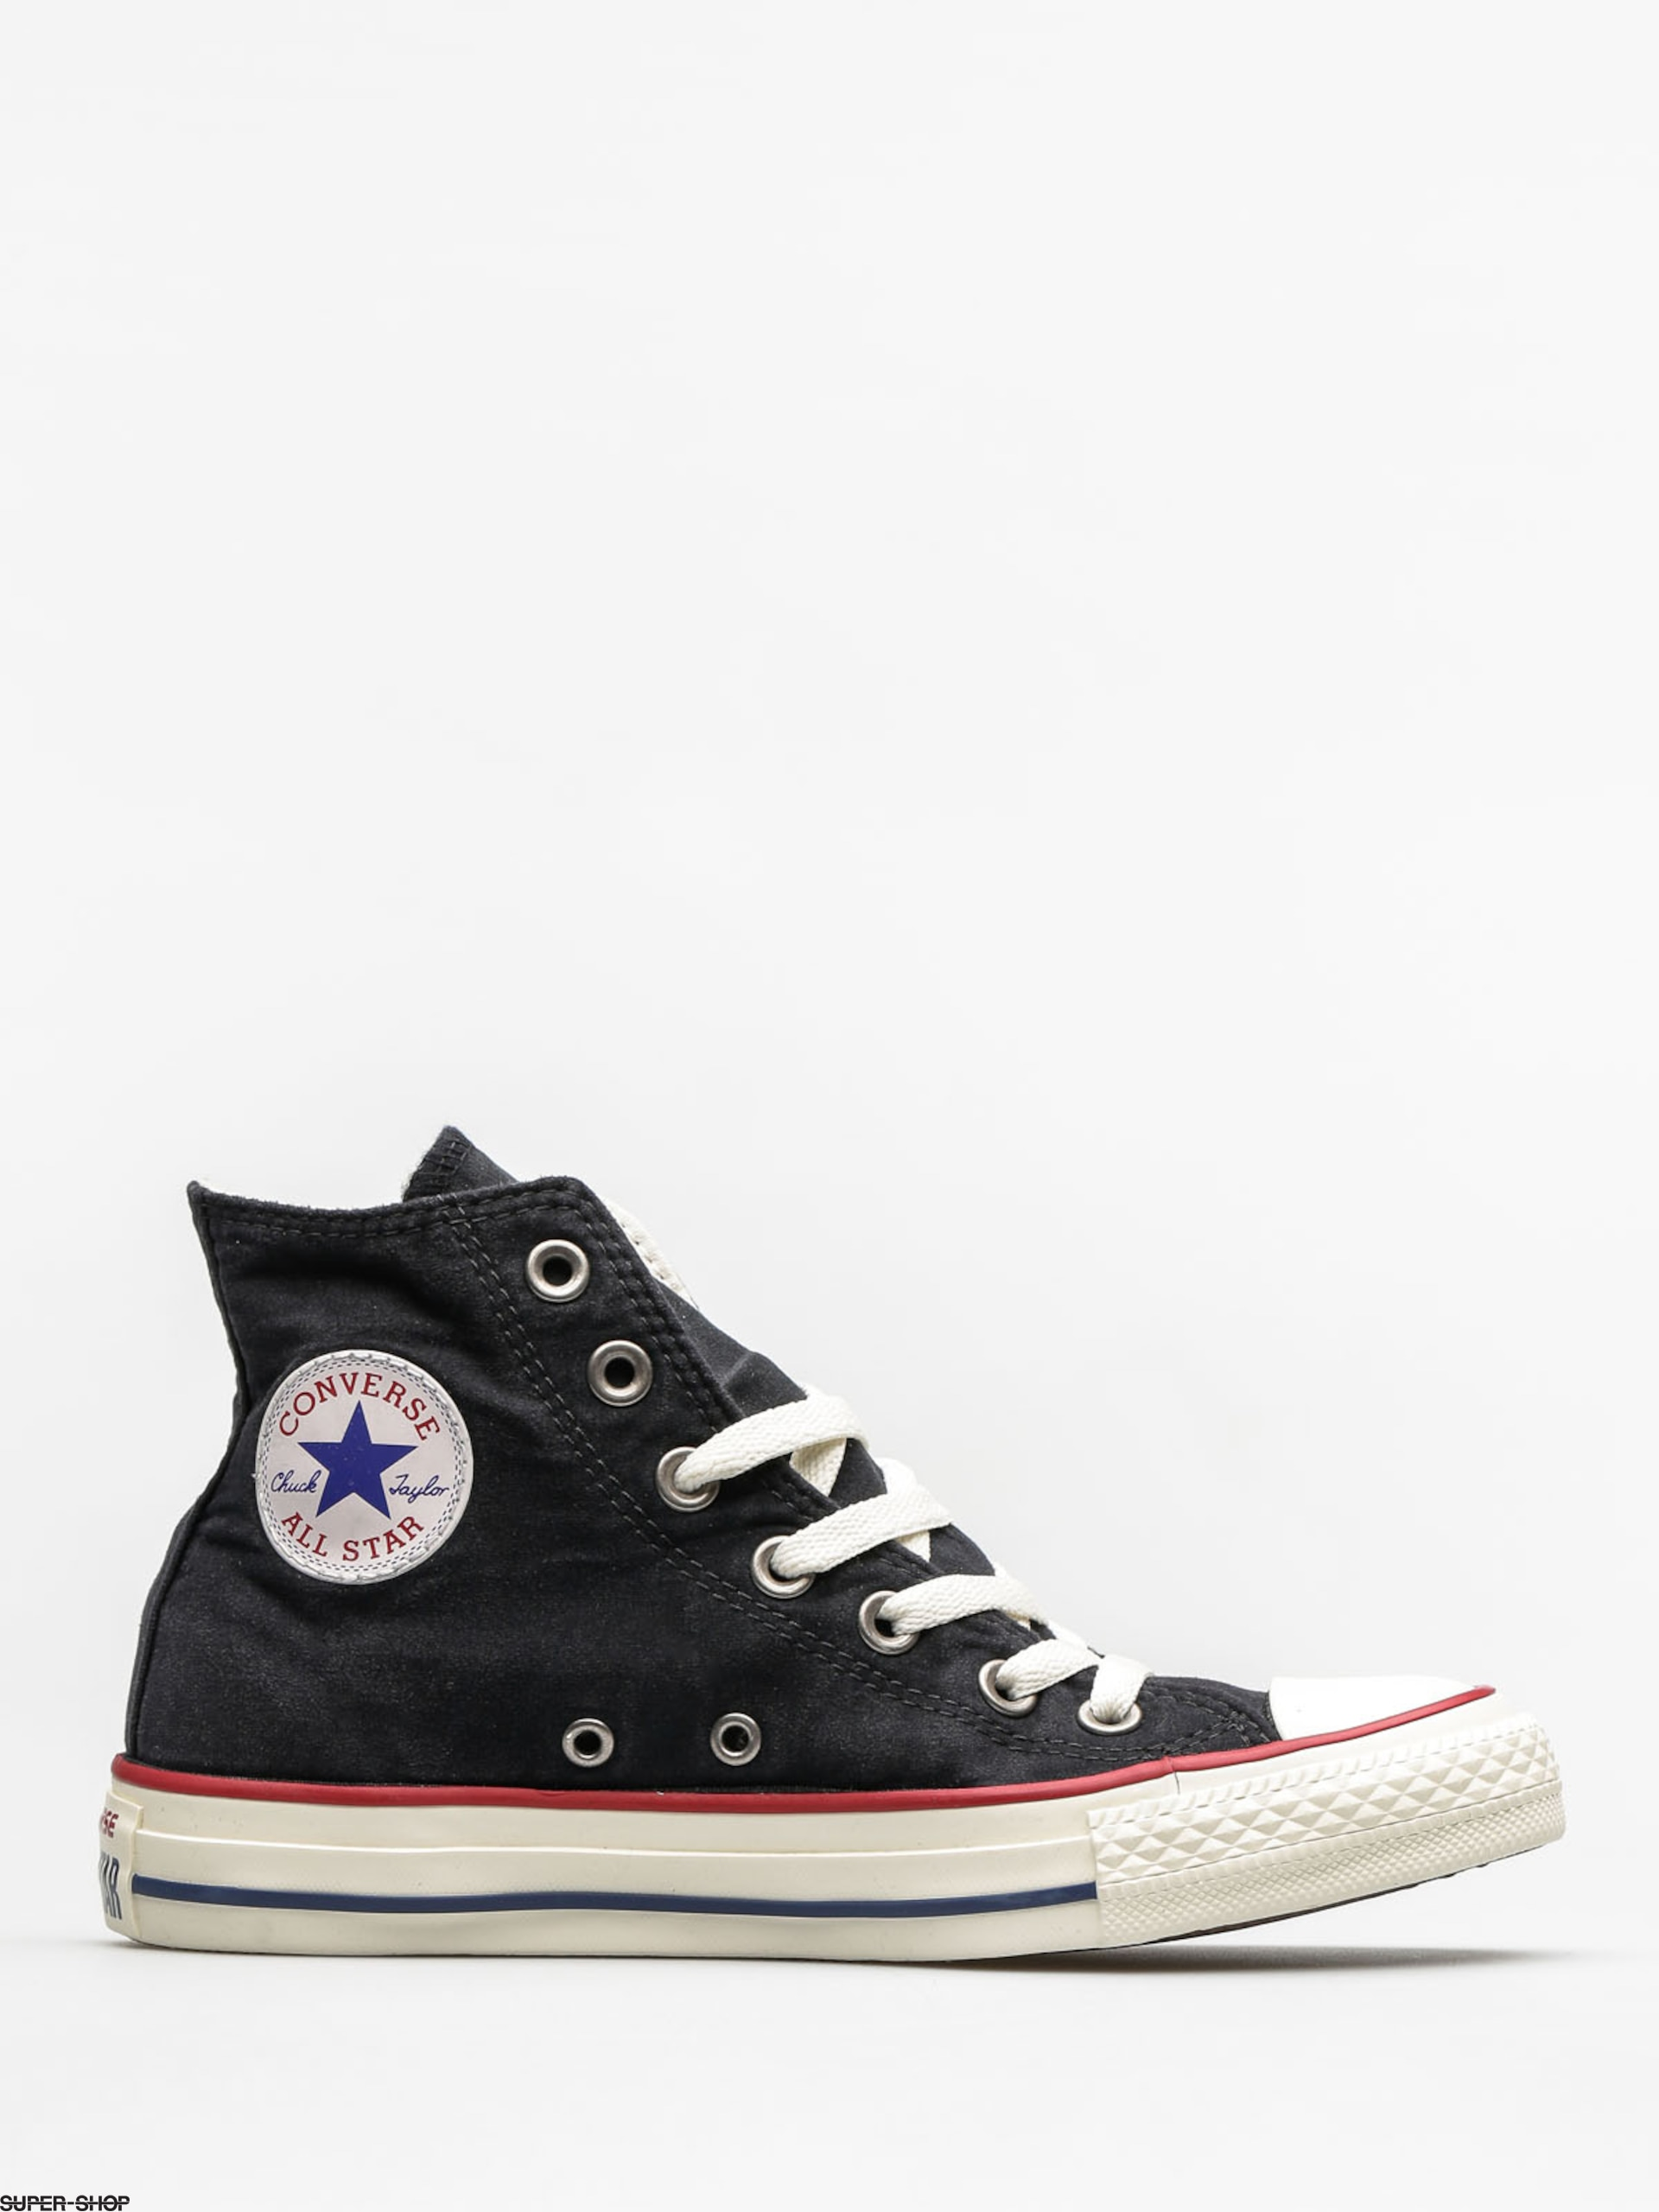 converse chucks chuck taylor all star hi black garnet white. Black Bedroom Furniture Sets. Home Design Ideas